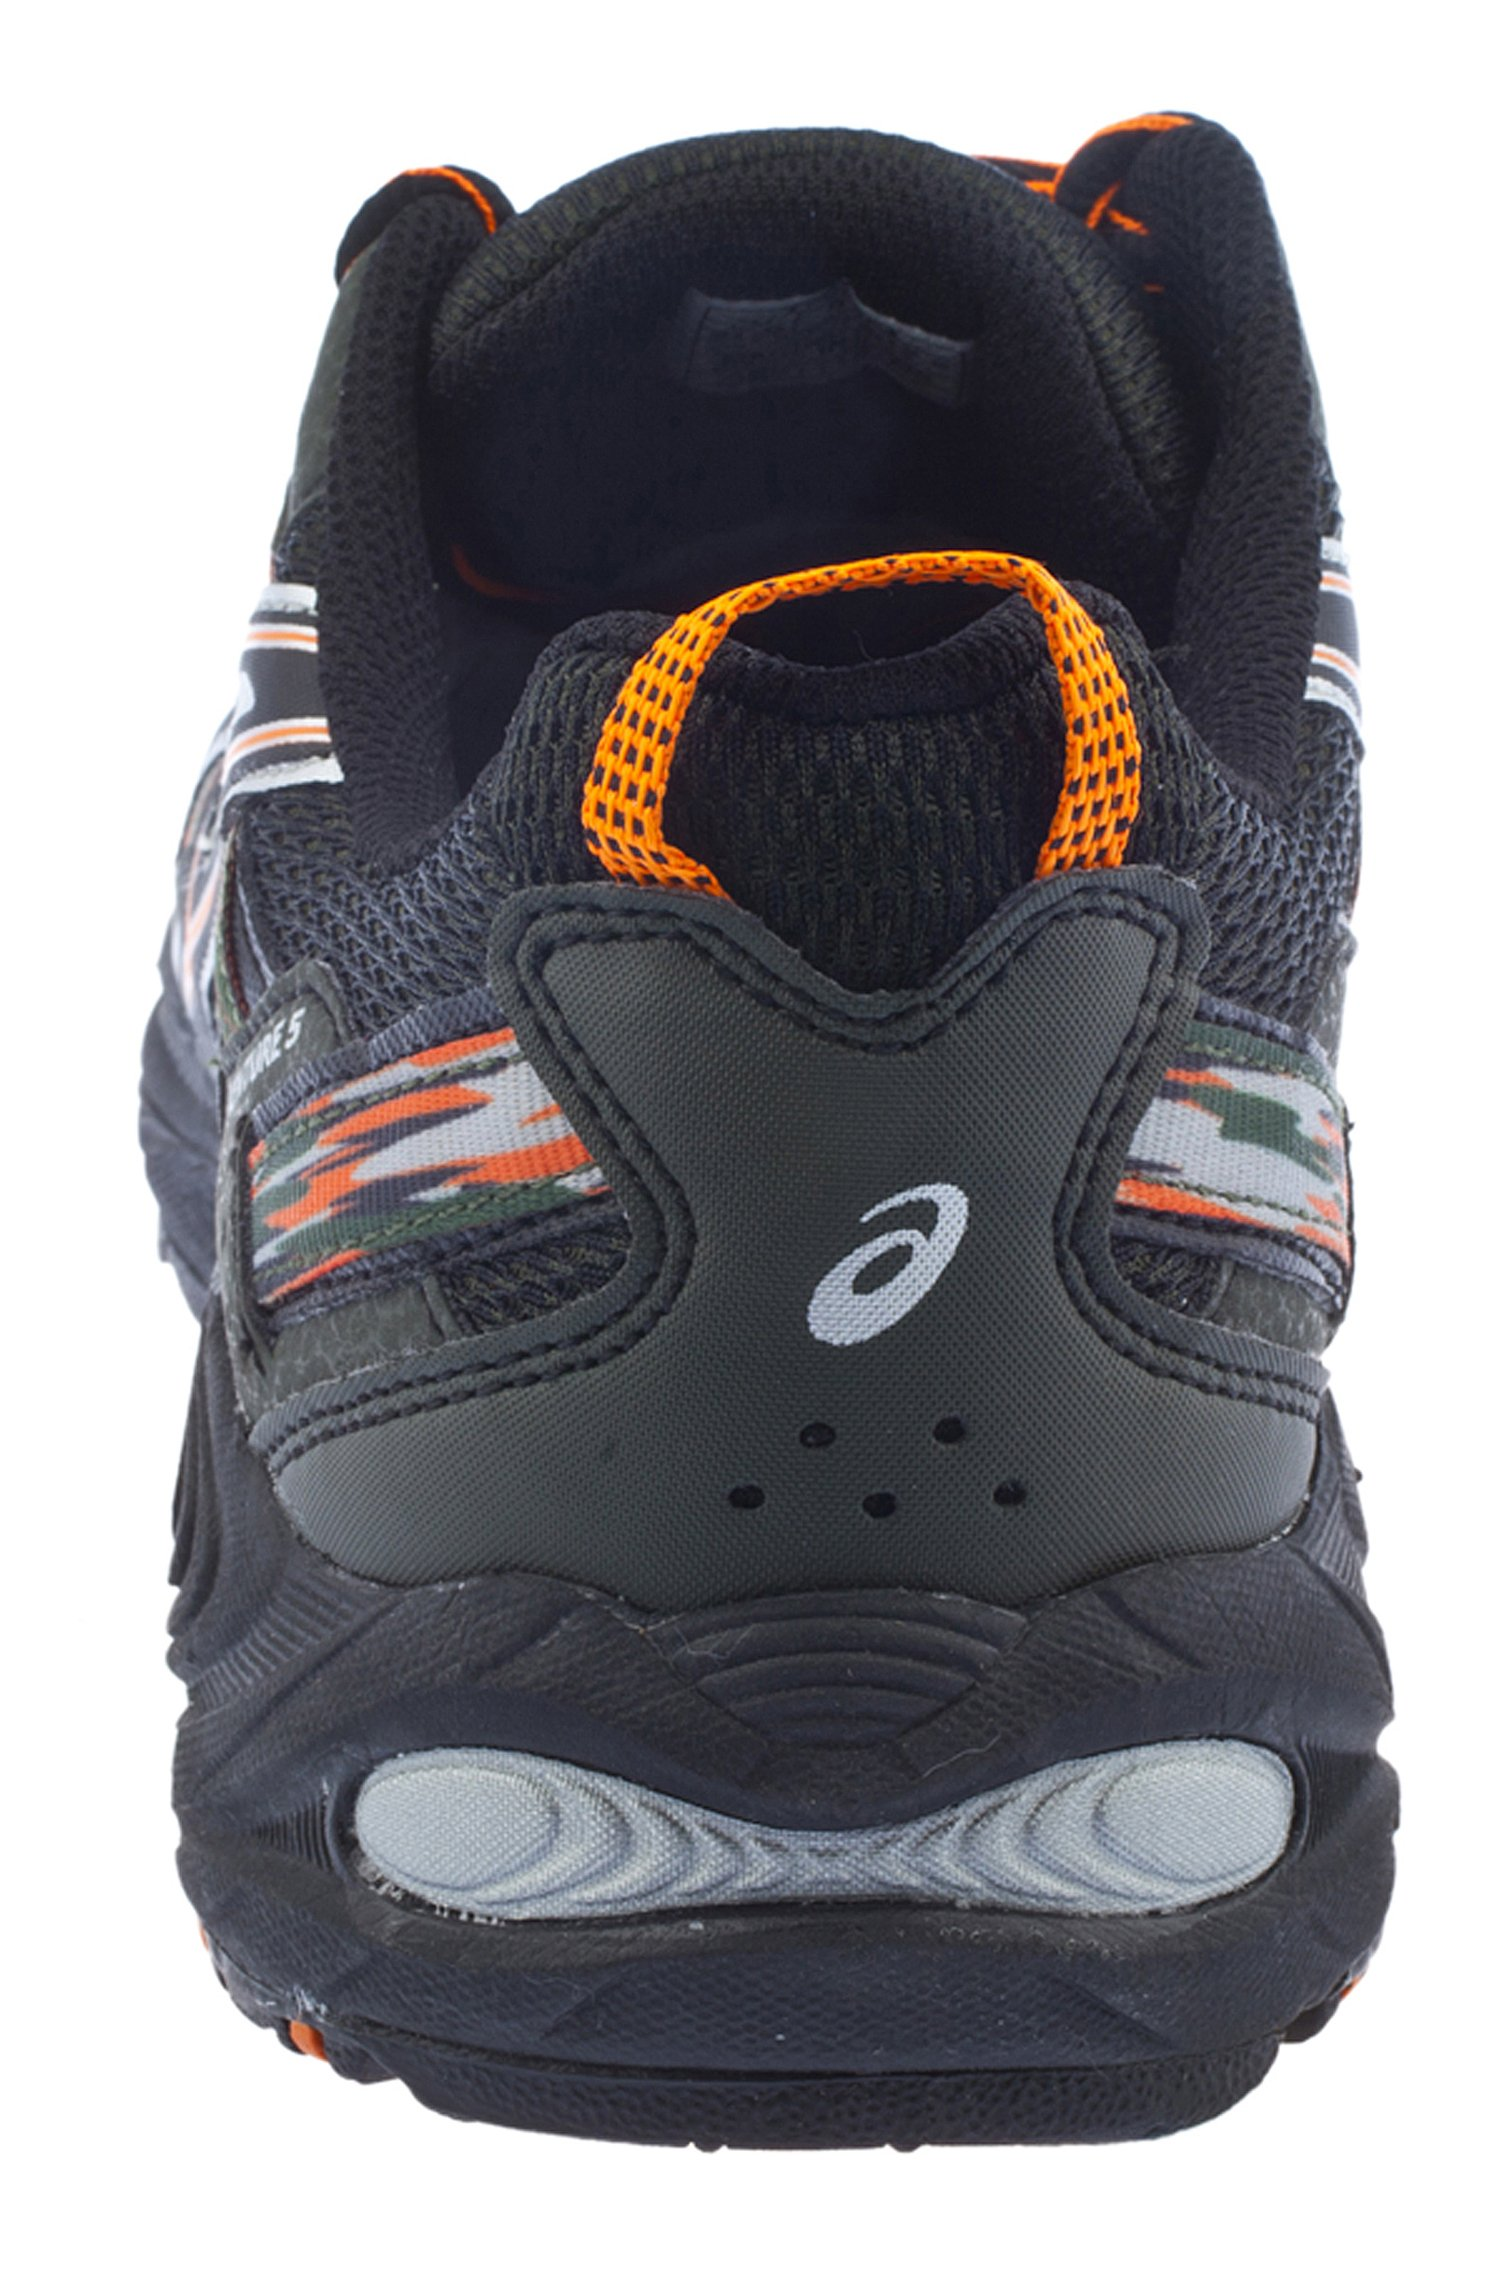 ASICS Men's Gel Venture 5 Running Shoe (8 D(M) US, Black/Shocking Orange/Duffel Bag) by ASICS (Image #3)